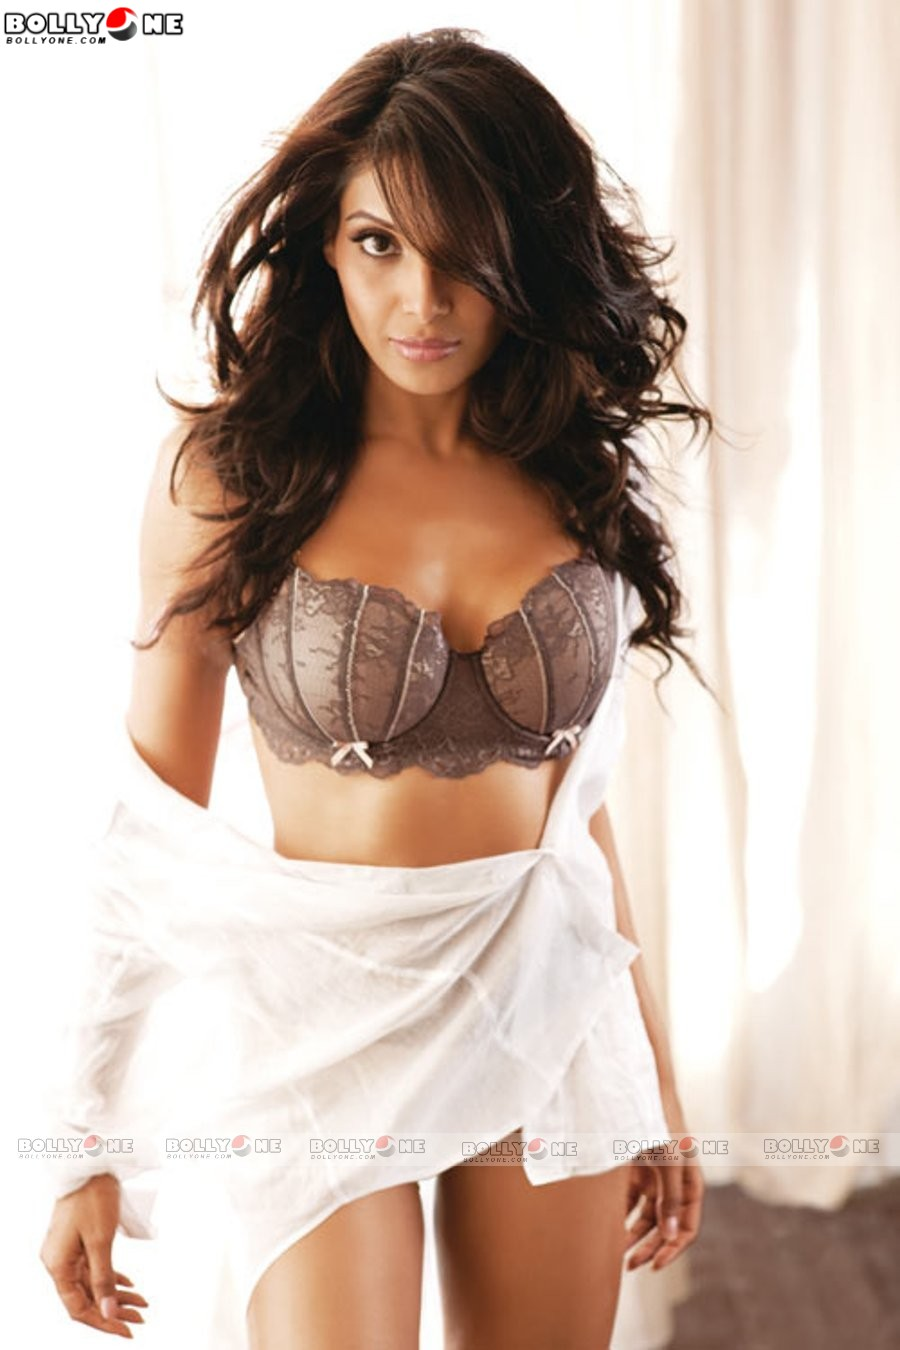 female celebrities: bipasha basu hot photoshoot